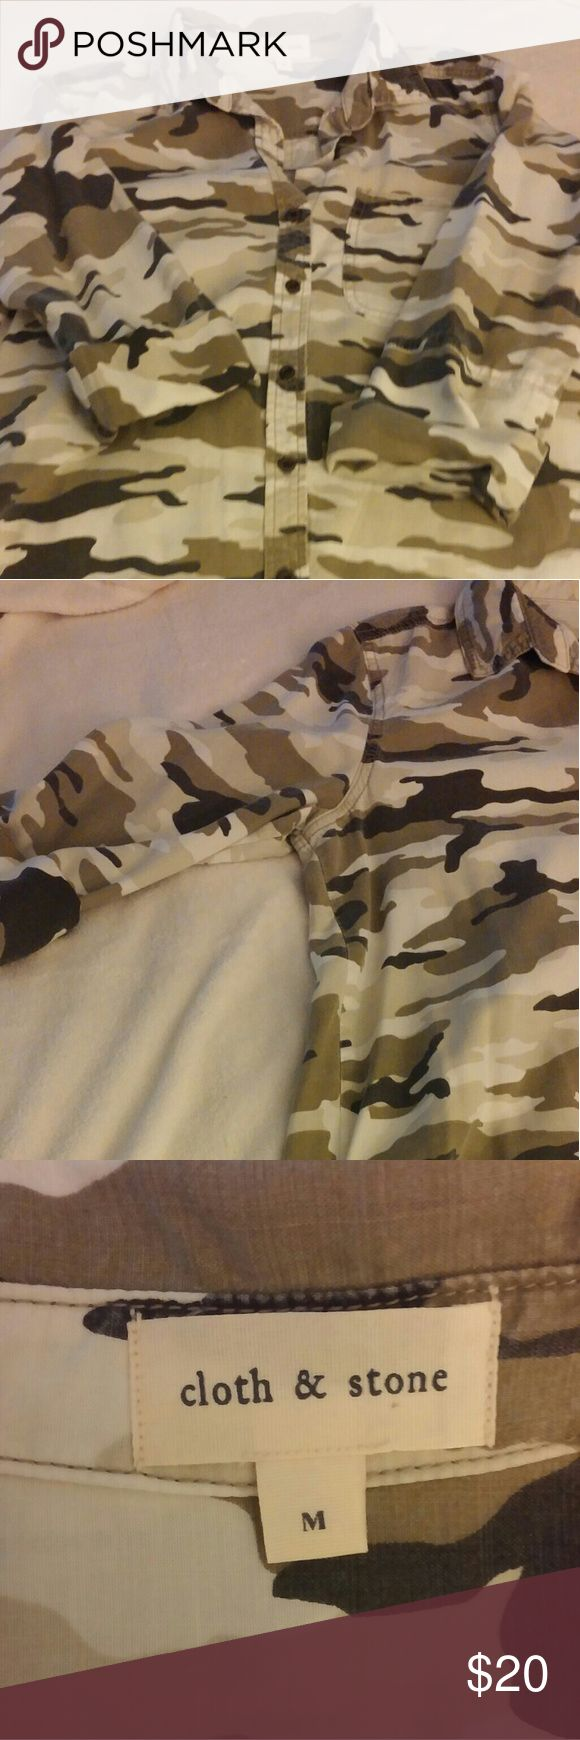 Blouse Army fatigue is all the rage again! This would be so cute with some added embellishments like patches or rhinestone...also being seen in the fashion industry today. 3/4 sleeve with single cuff fold. Single pocket. 100% Tencel which means it is super soft and comfy. Cloth & Stone Tops Button Down Shirts